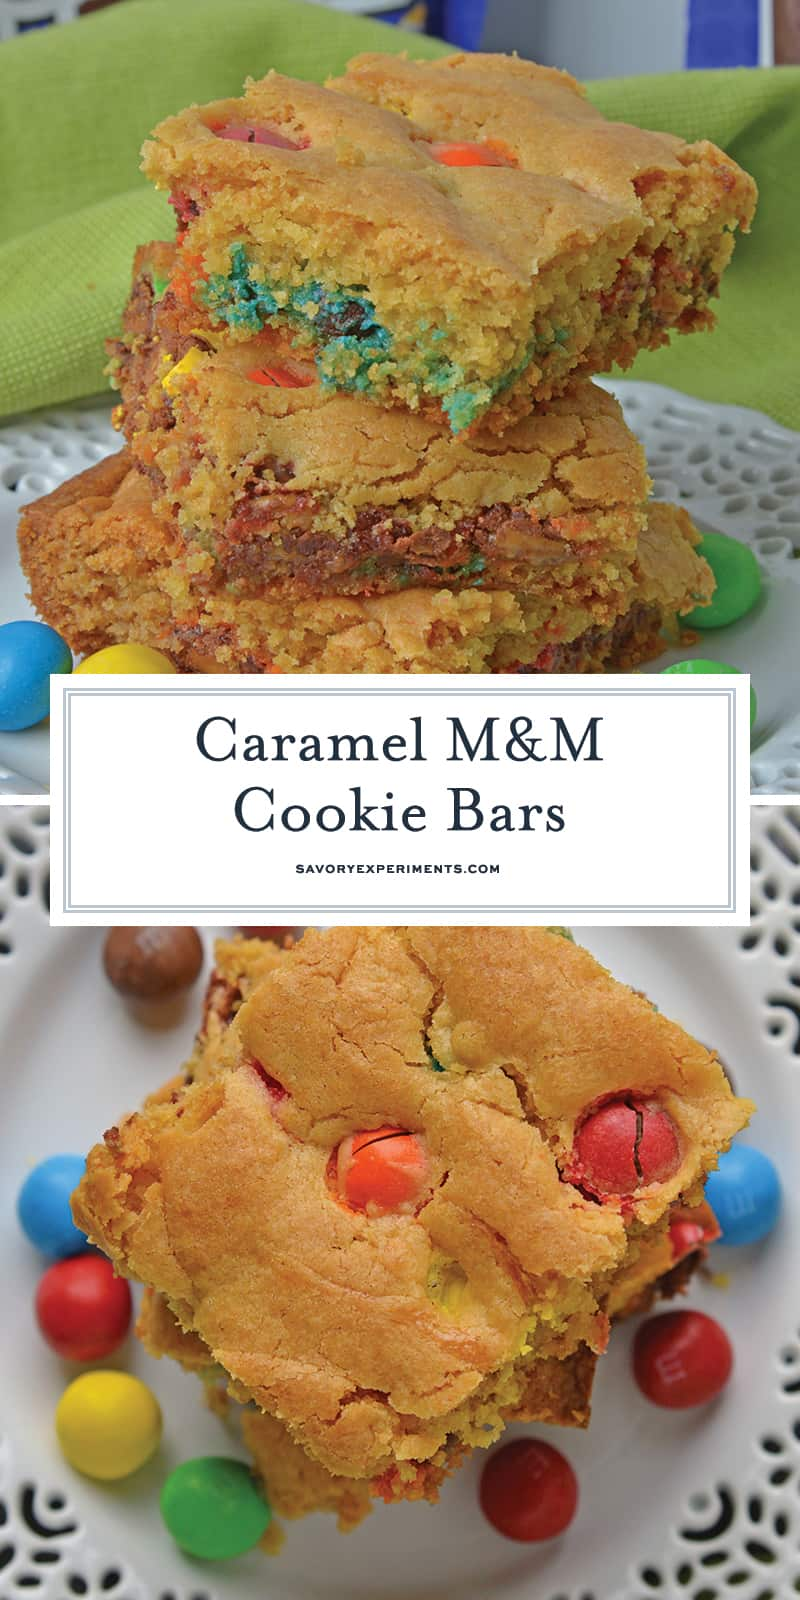 Caramel Cookie Bars are an easy dessert bar recipe using only 5 ingredients and 40 minutes! Soft, easy bar cookies with chocolate and caramel. #dessertbars #magiccookiebars www.savoryexpriments.com